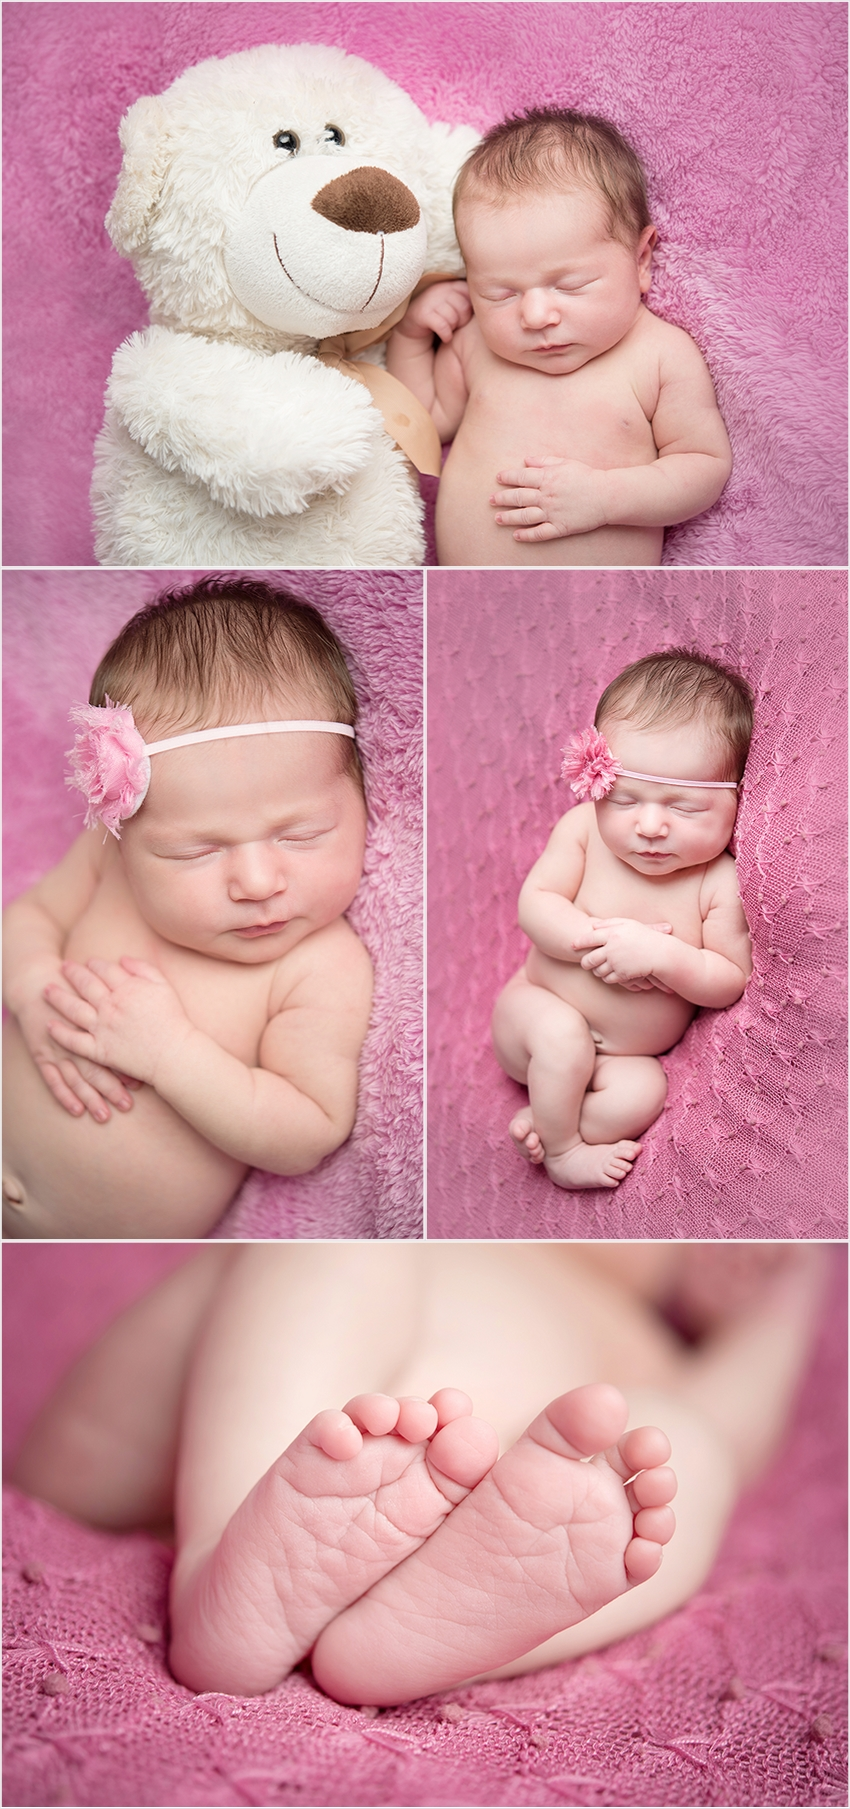 outdoor-newborn-photography-abbotsford-bc-006-side-6